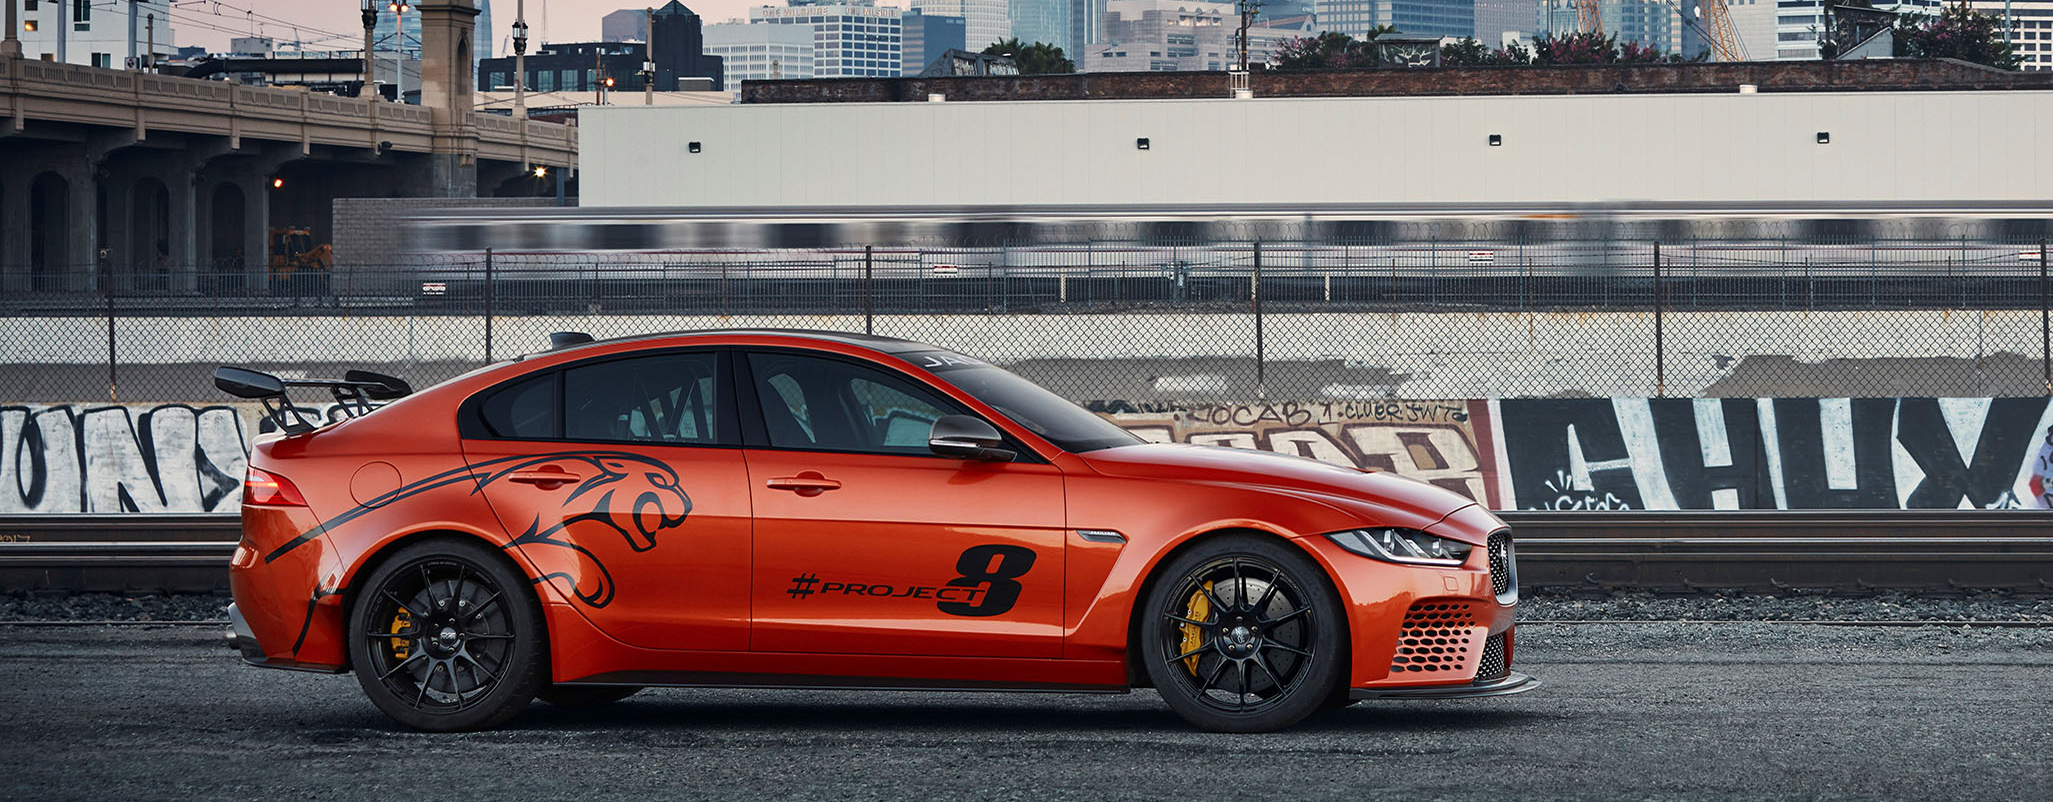 Jaguar Xe Sv Project 8 Jaguar Xe Sv Project 8 To Make North American Debut At